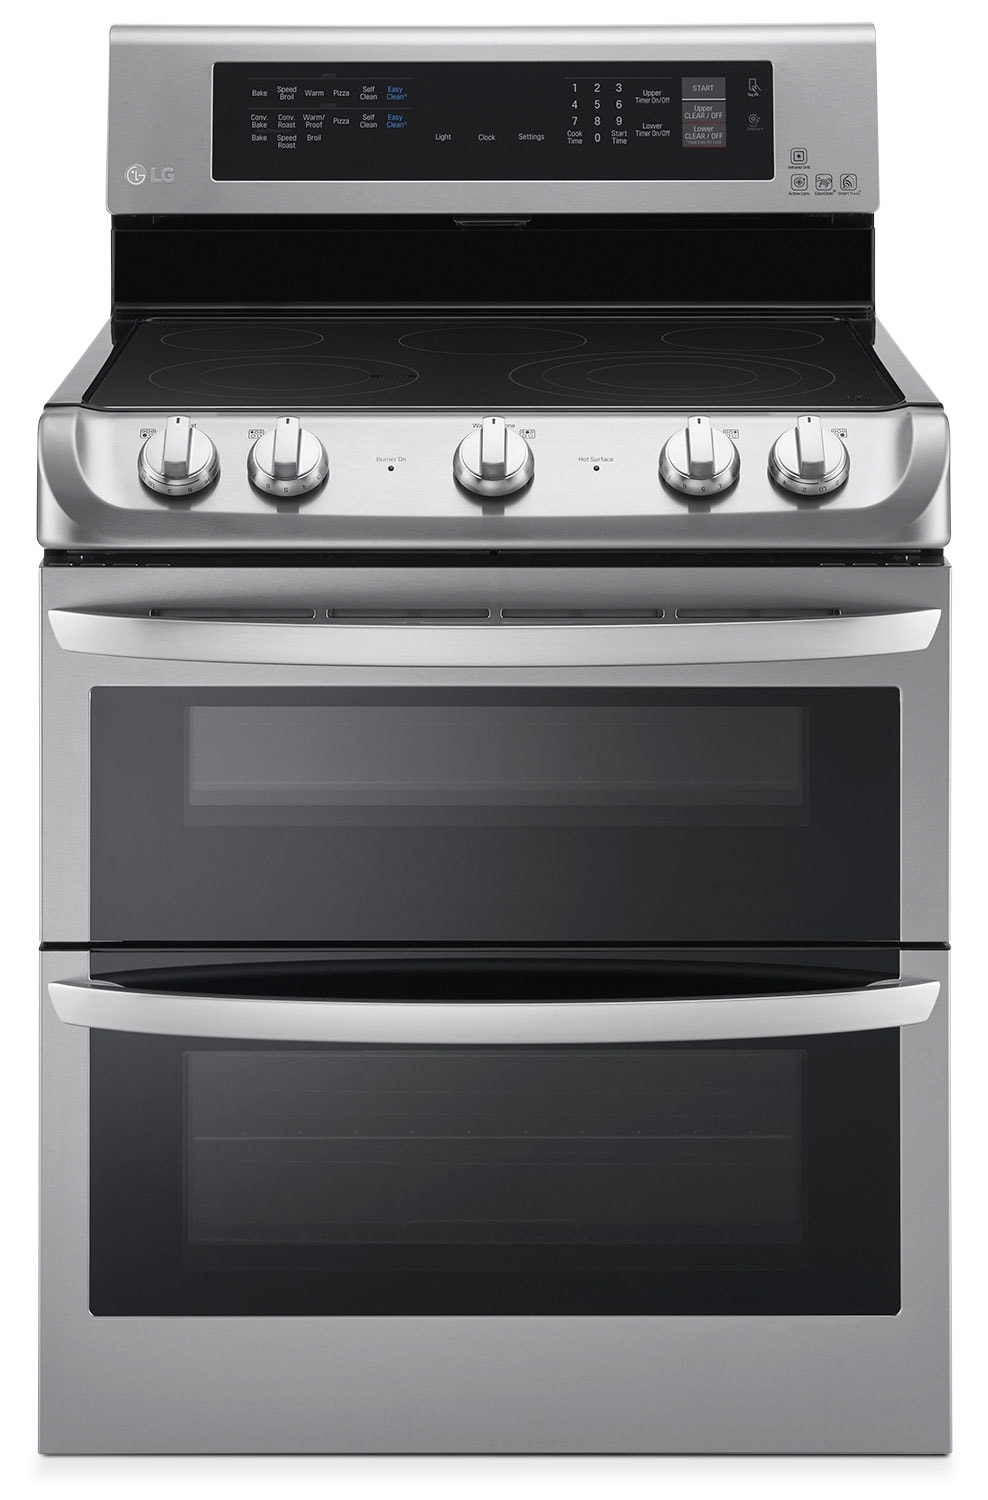 LG 7.3 Cu. Ft. Electric Range with Double Oven – Stainless Steel